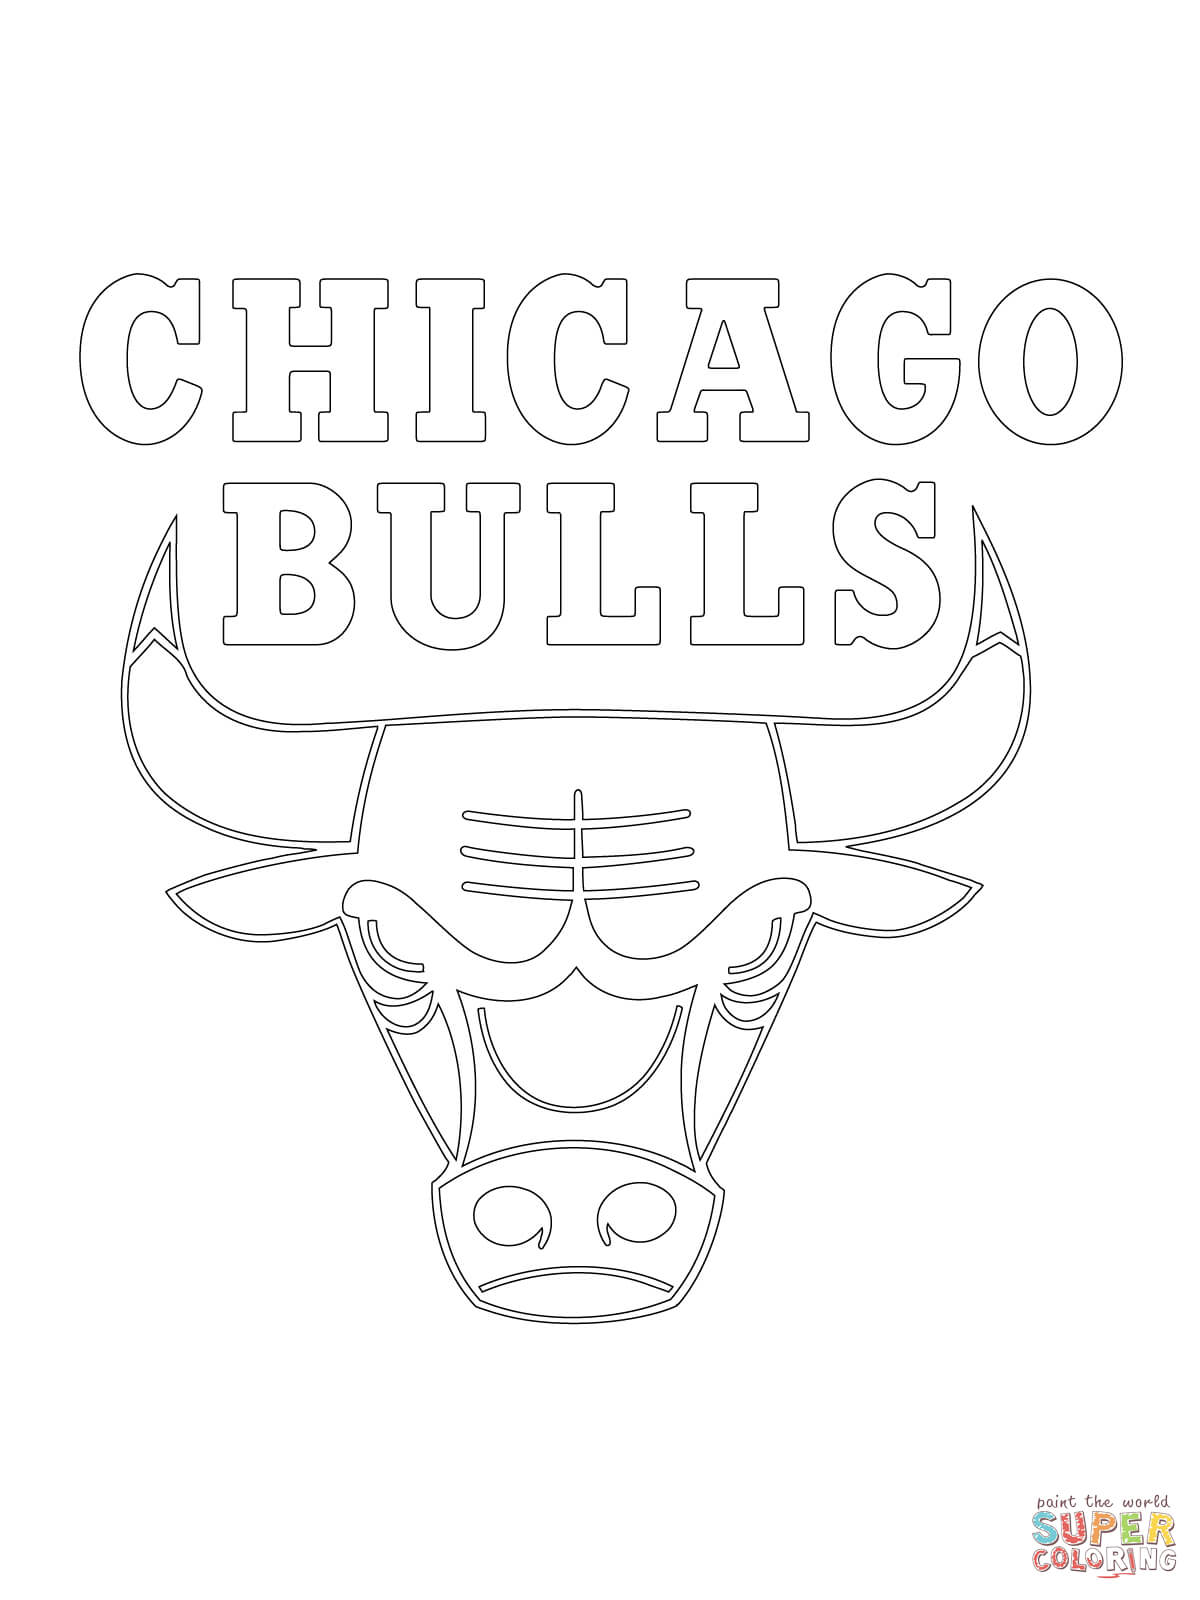 chicago bulls coloring pages chicago bulls coloring page free nba coloring pages chicago bulls coloring pages